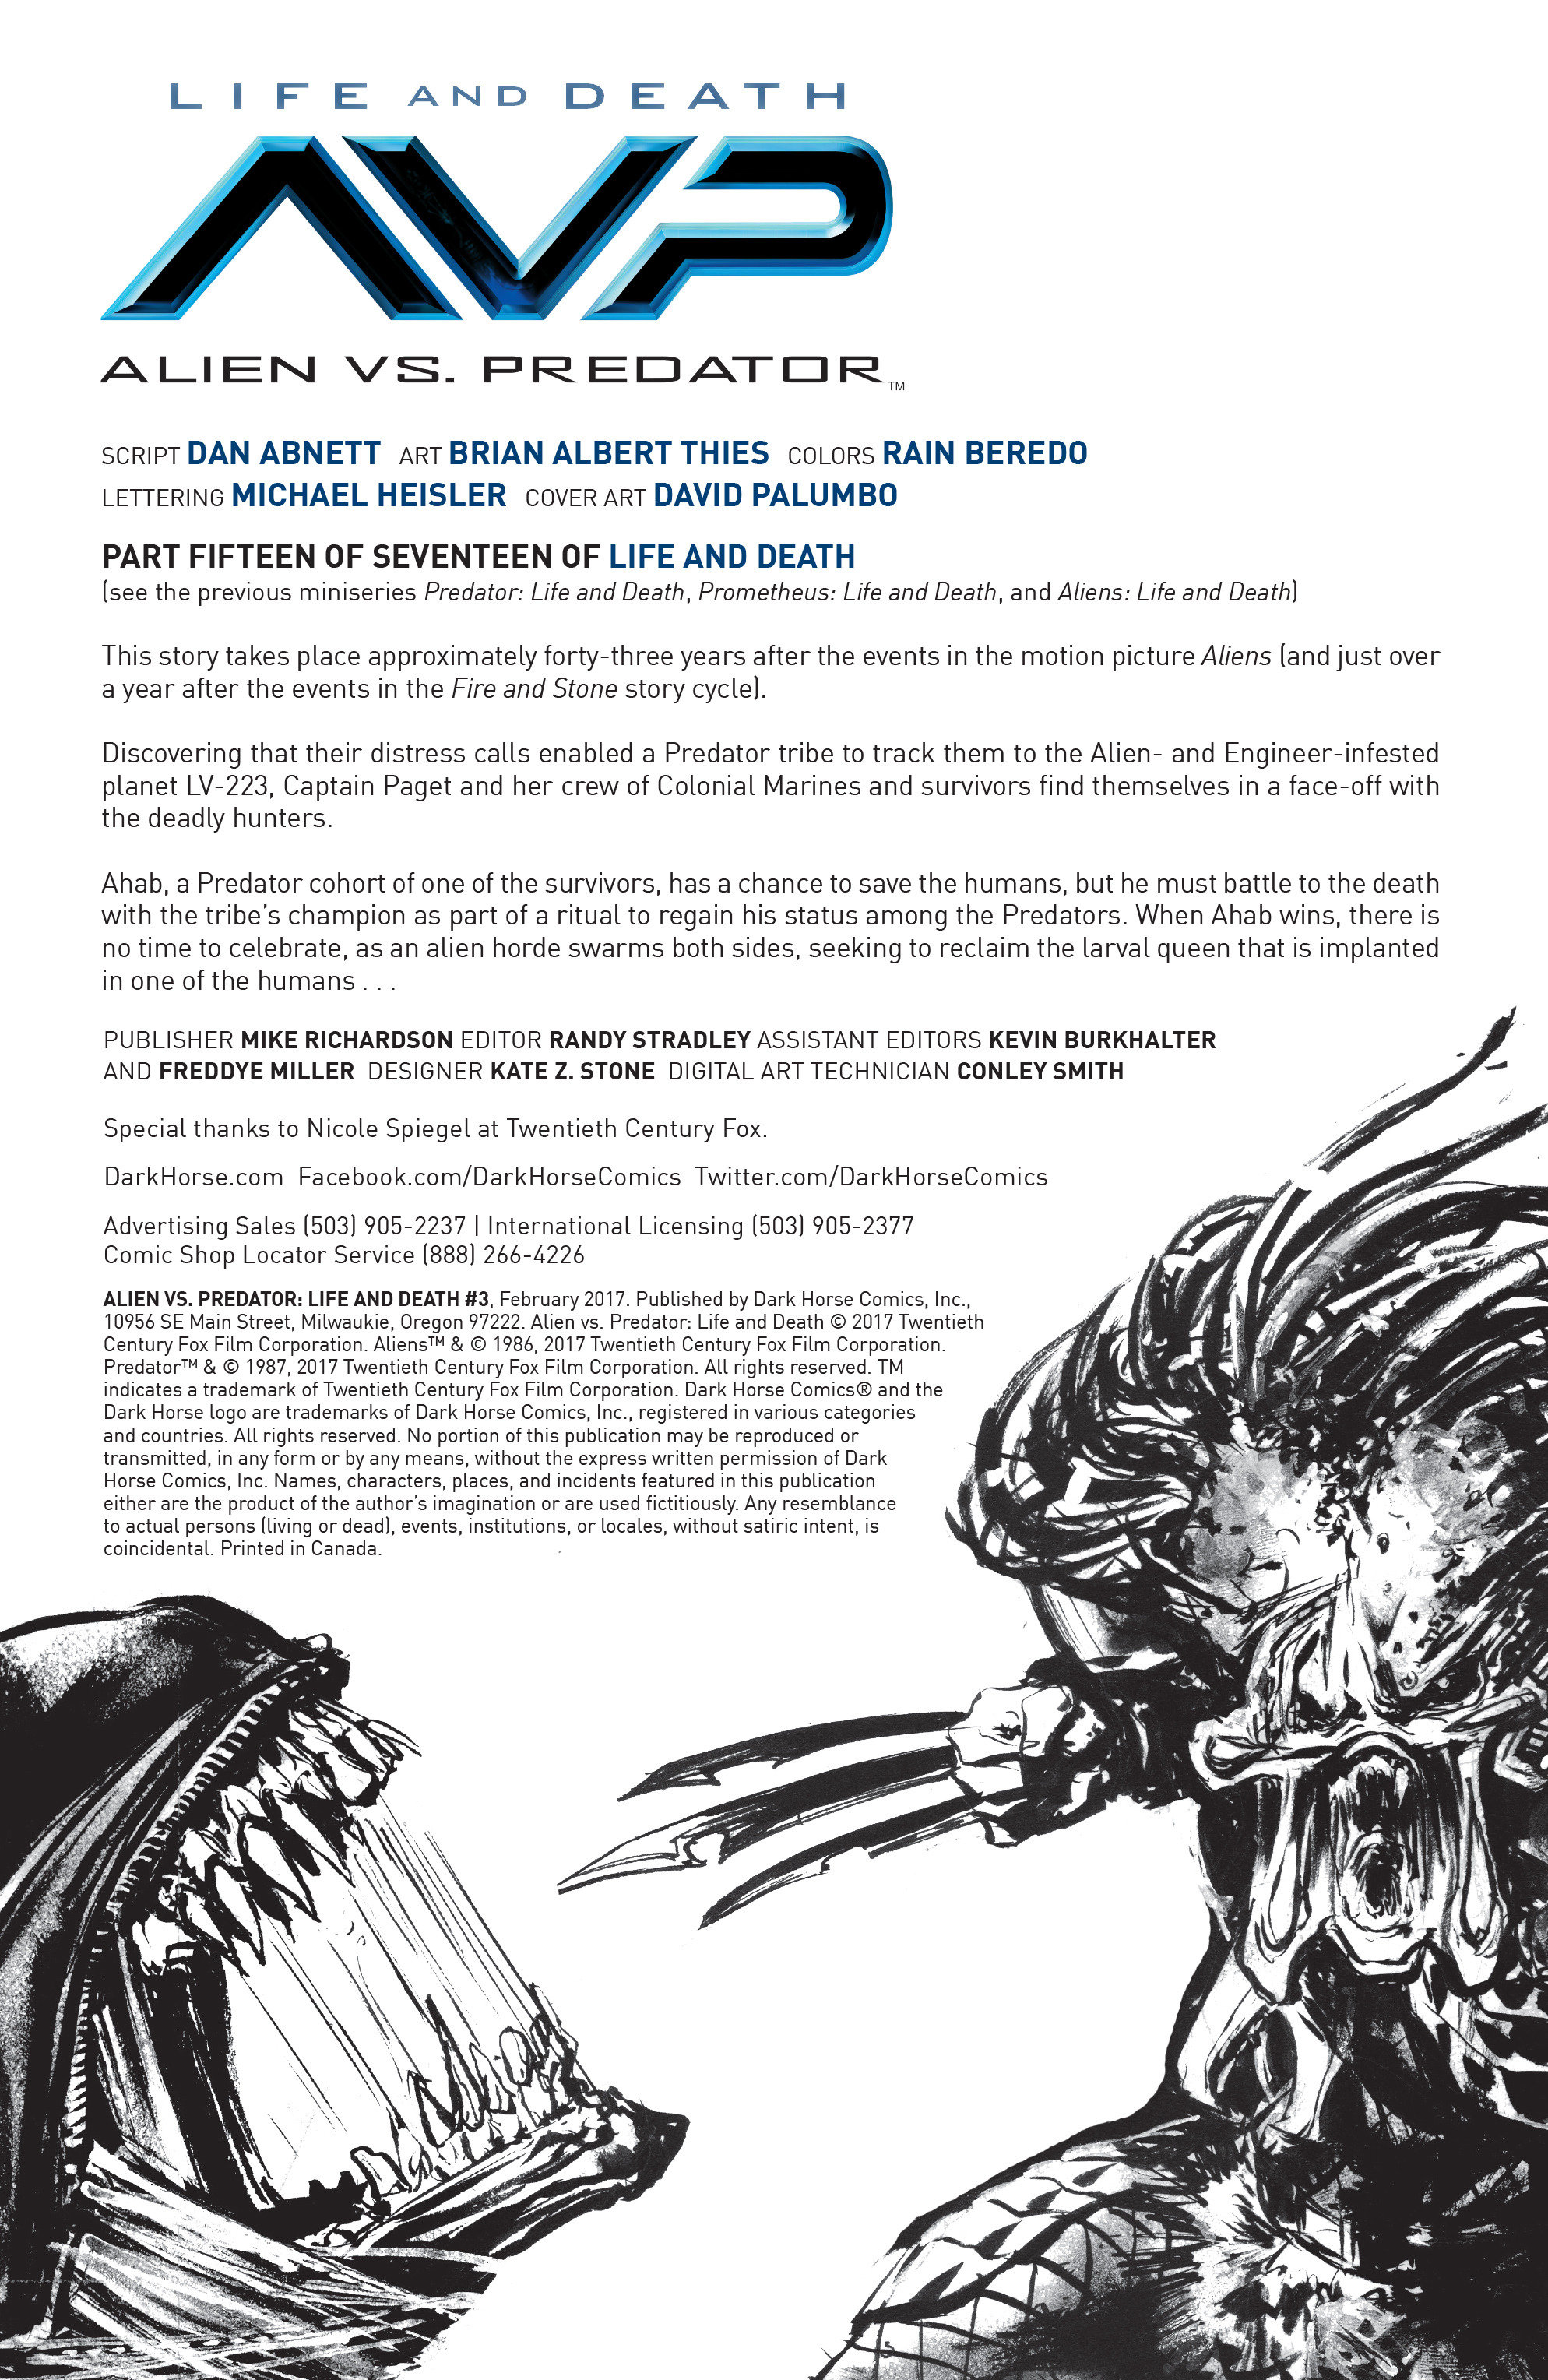 Read online Alien Vs. Predator: Life and Death comic -  Issue #3 - 2